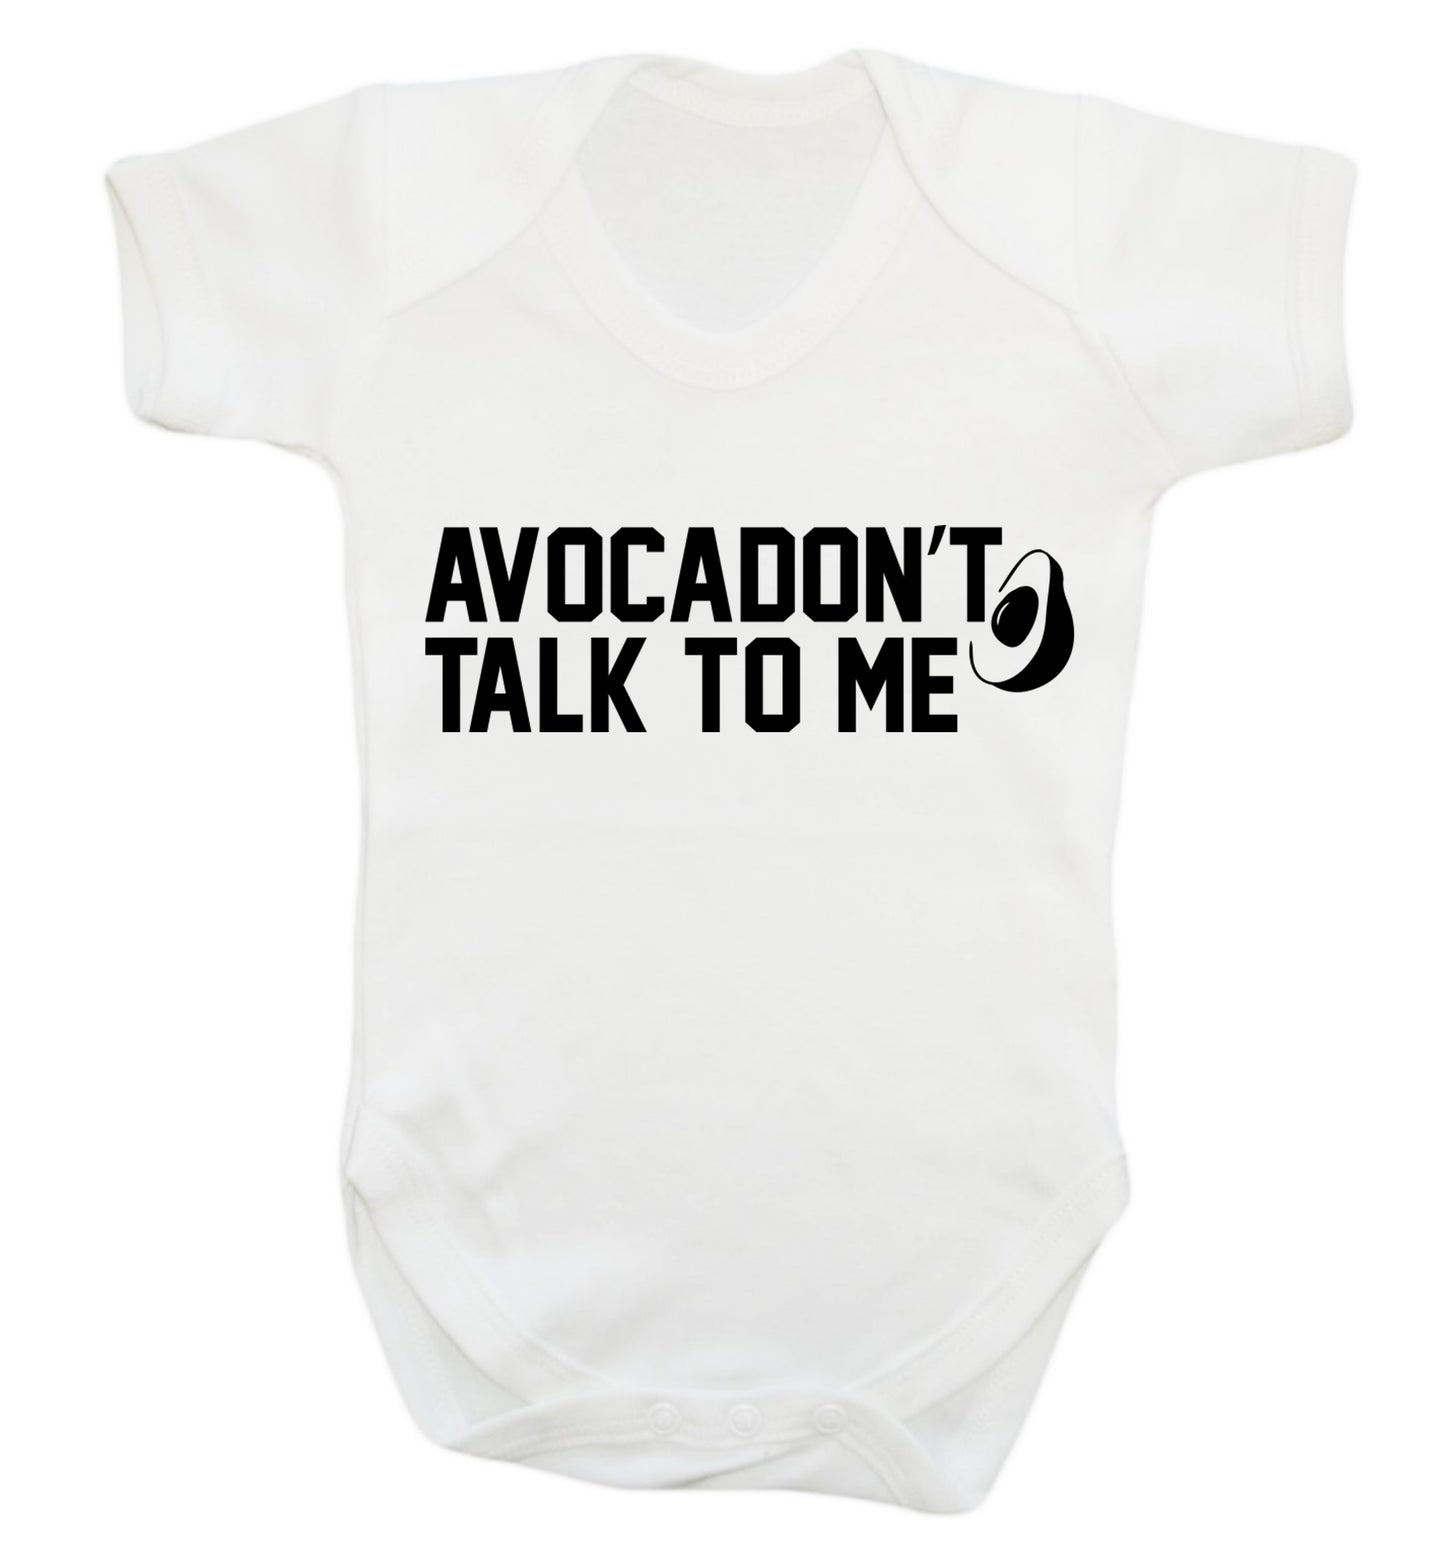 Avocadon't talk to me Baby Vest white 18-24 months